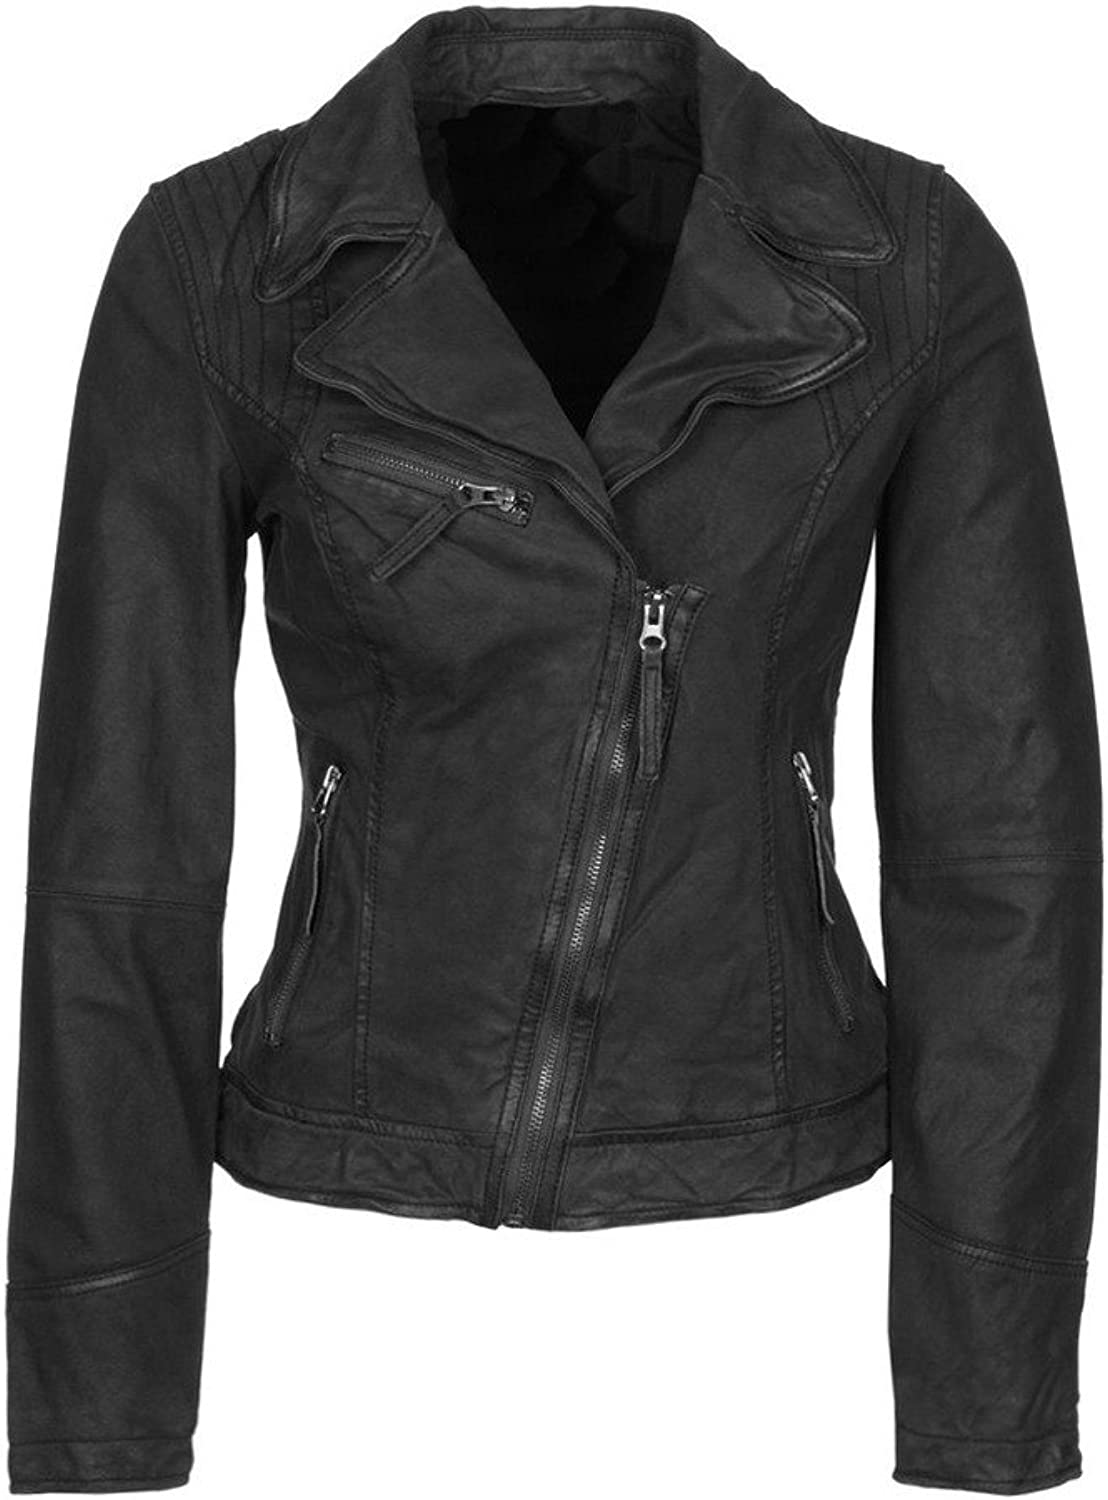 New Womens Lambskin Leather Slim Fit Motorcycle Jackets LFW159